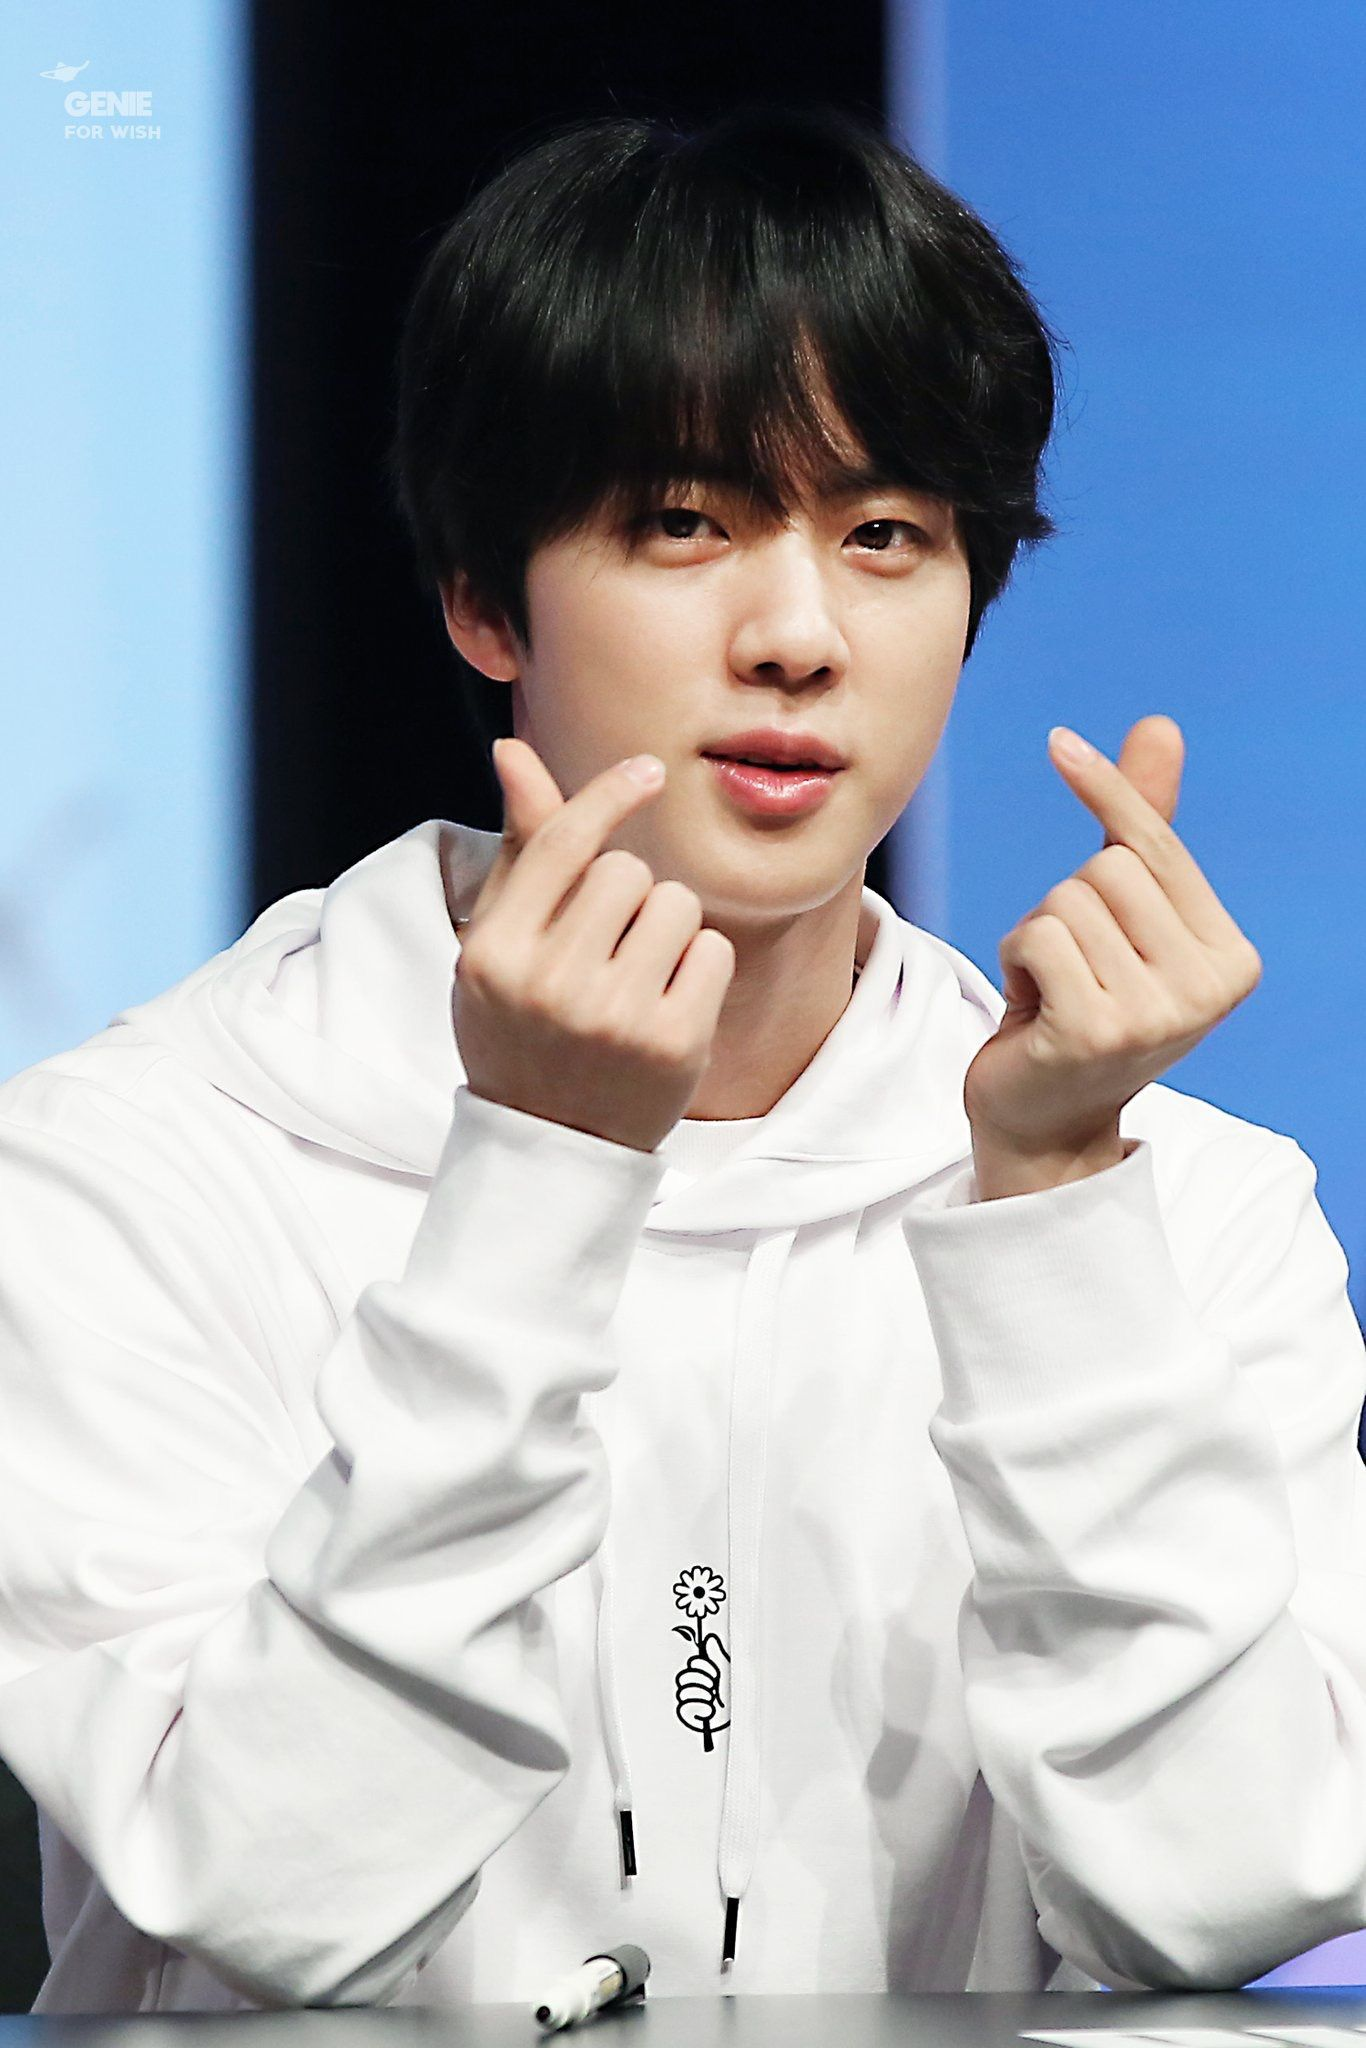 Happy Birthday Bts Jin Seokjin Bts Seokjin